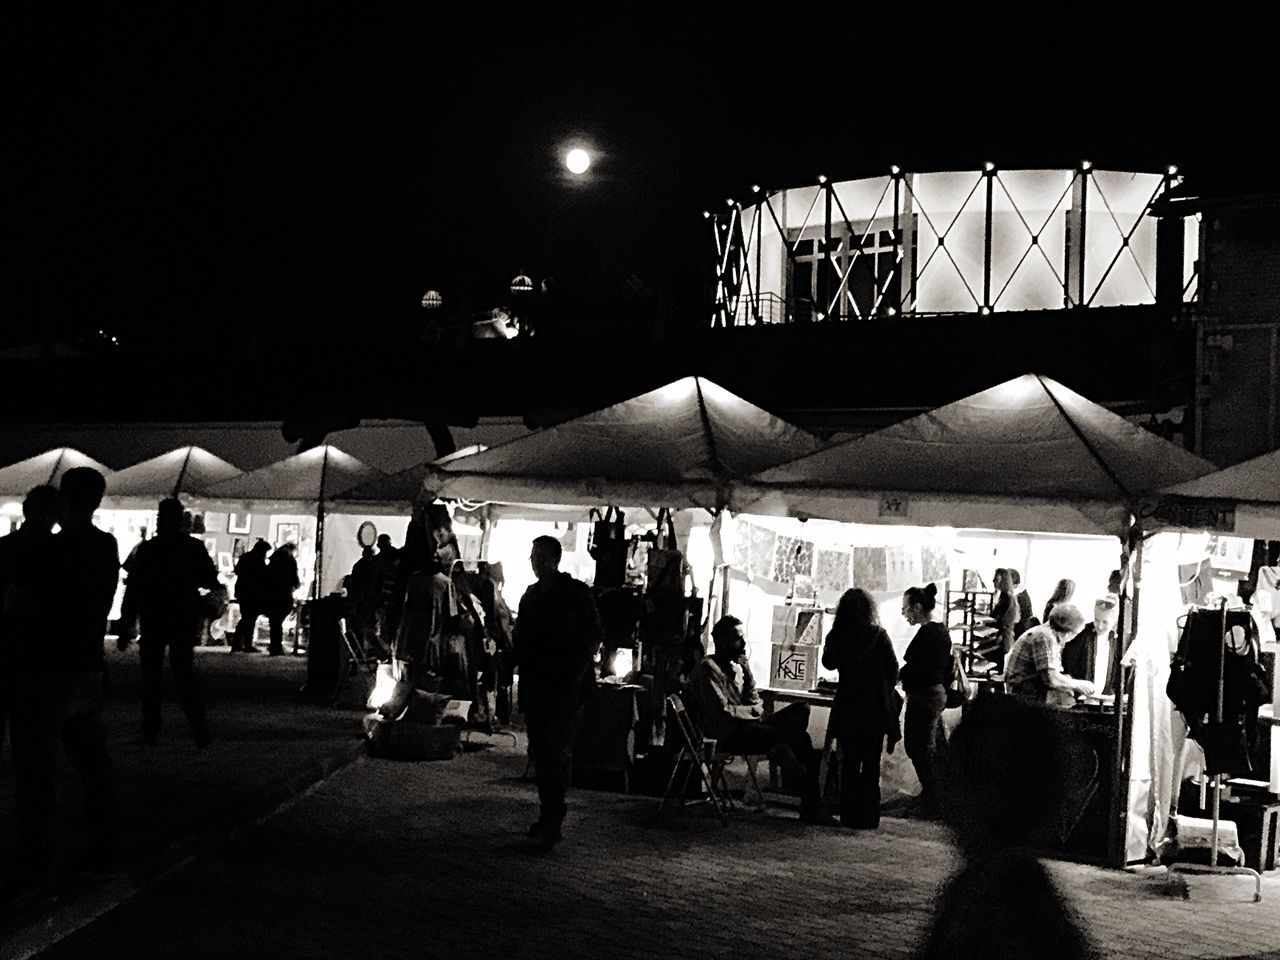 Large Group Of People in a Fleemarket Bazaar Illuminated by the October ' s Full Moon Light And Shadow Dark Silhouette_collection for Bnw_friday_eyeemchallenge in Athens